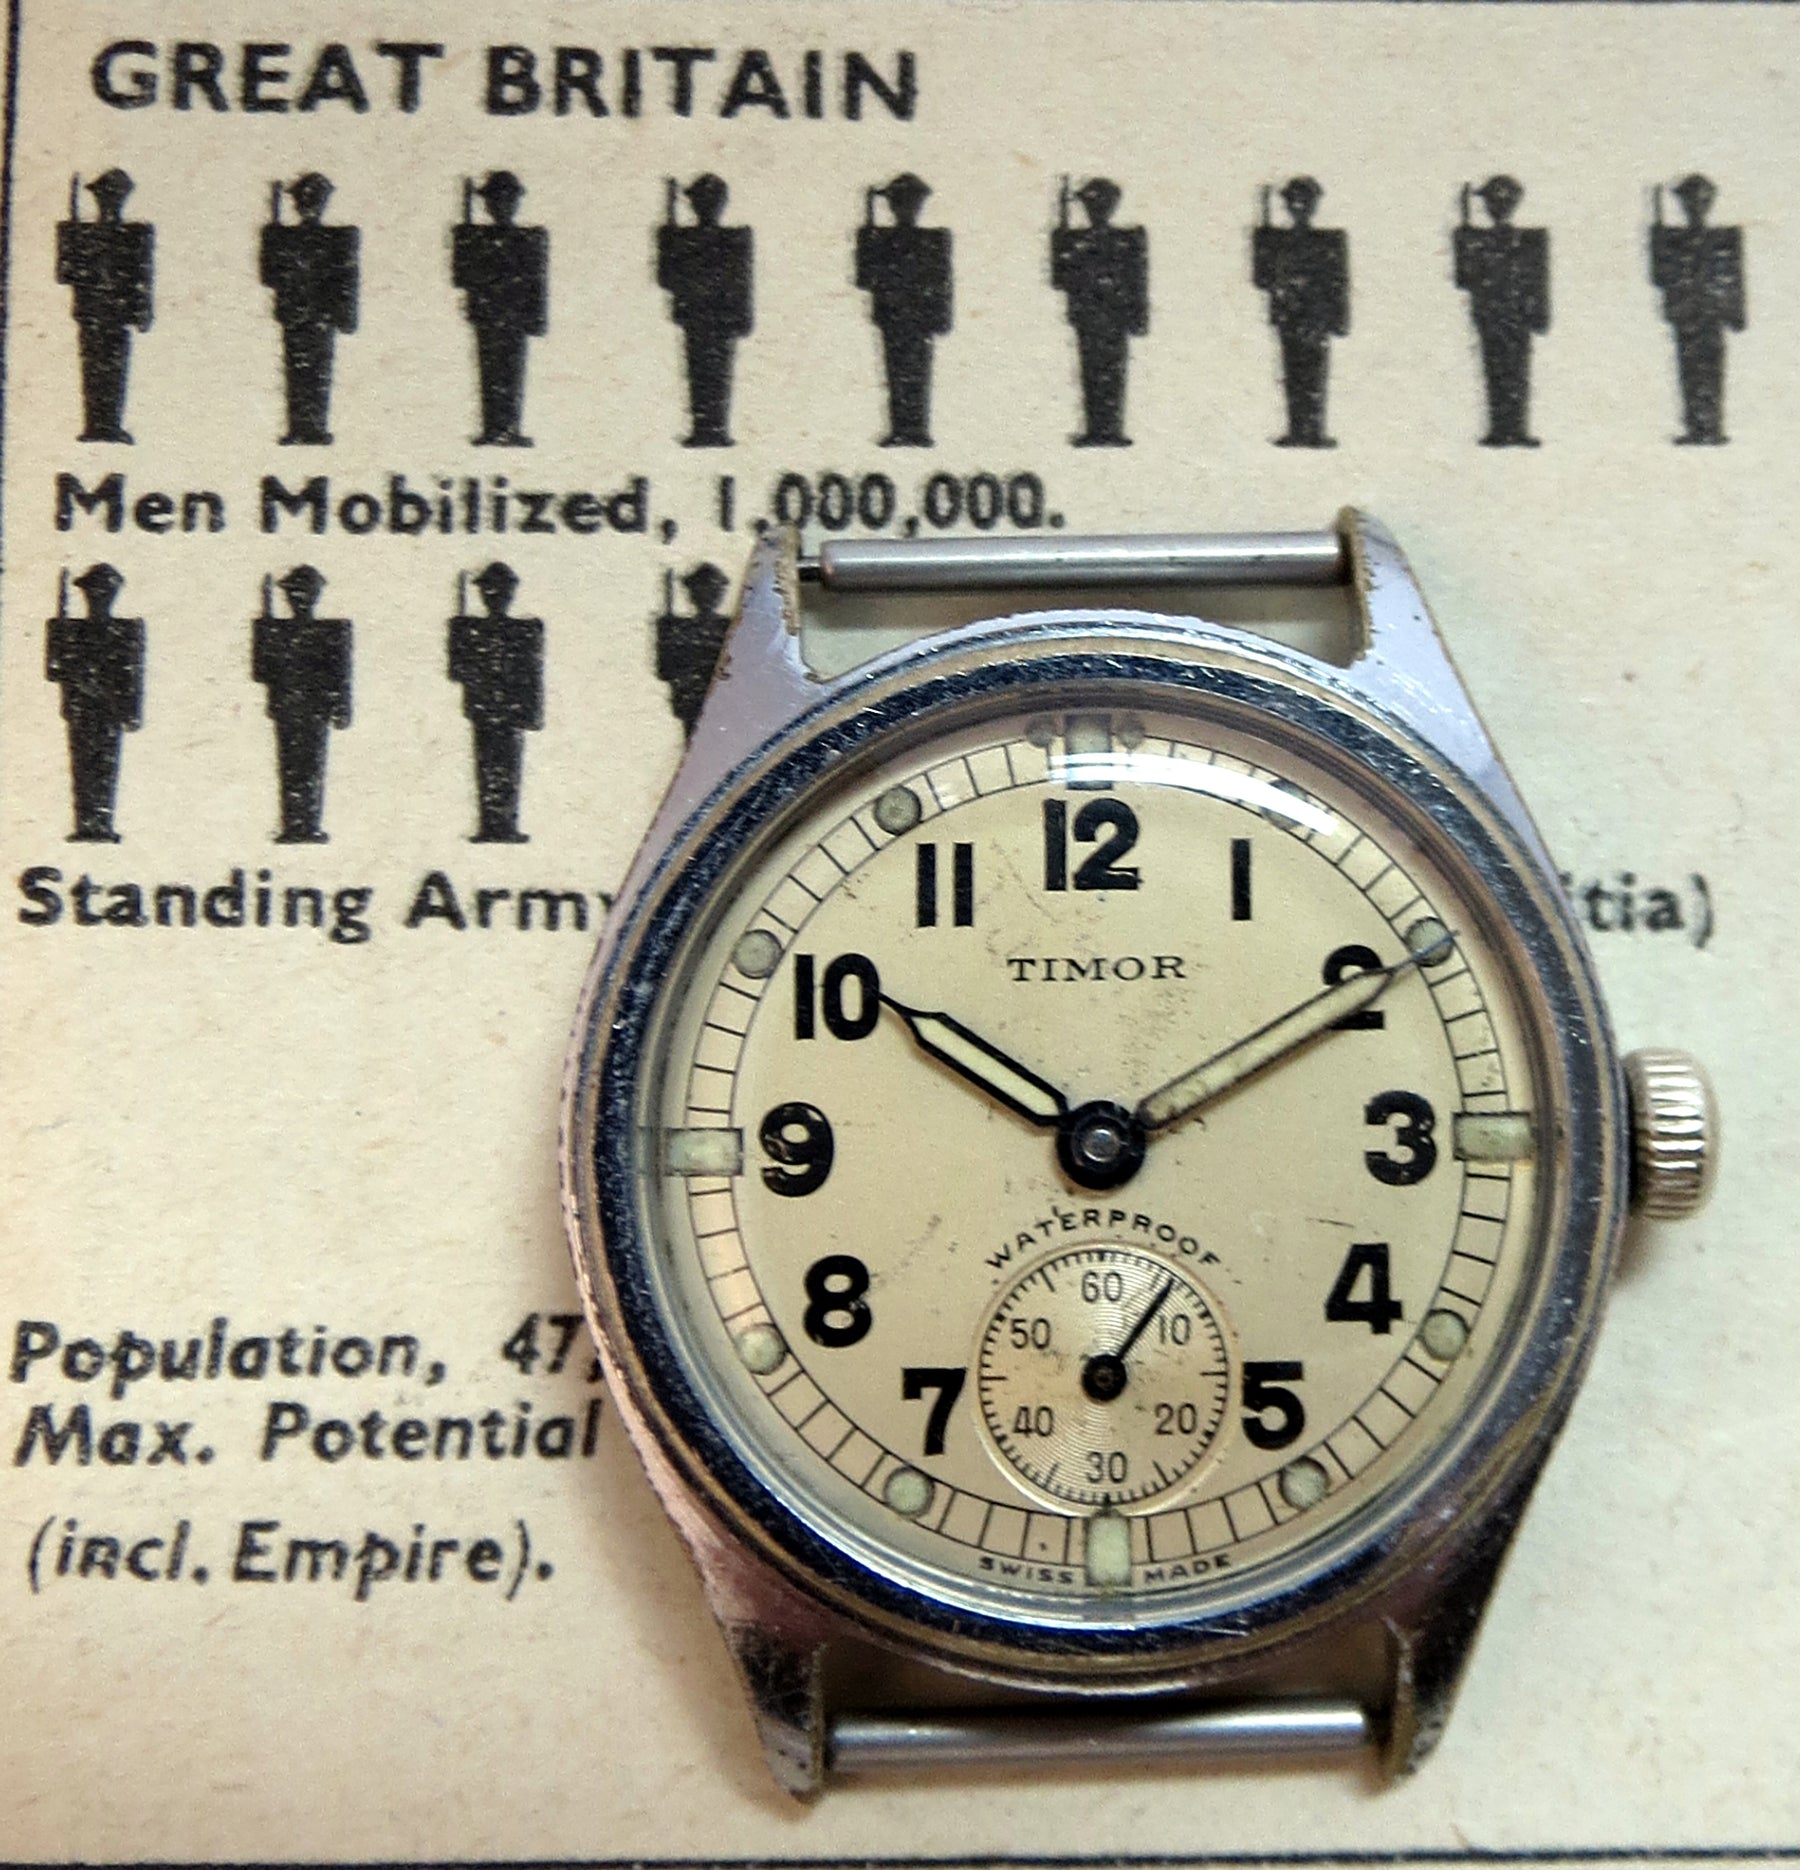 WWII ATP watch with chrome plated brass case by Timor. Note the railroad track minute marker and heavy radium paint on the hands and hour markers.